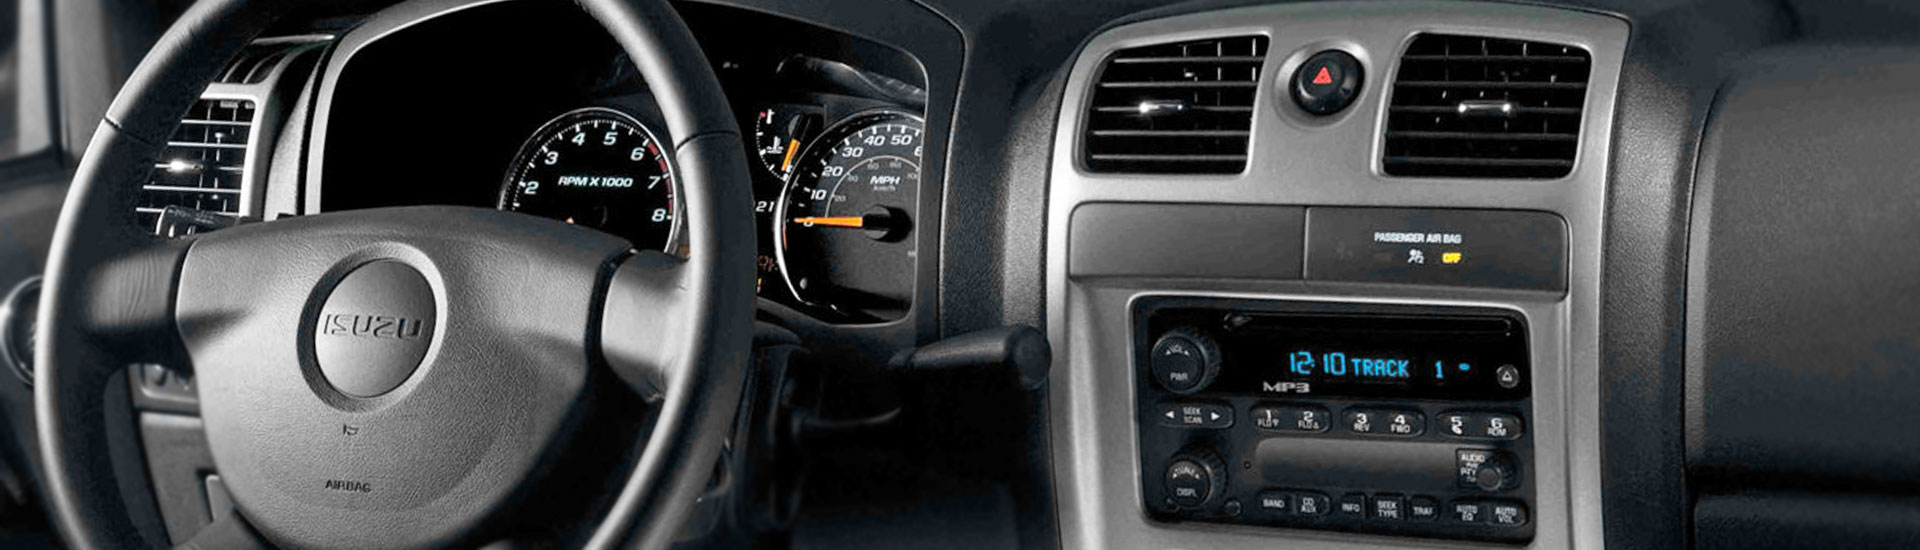 Isuzu Pick Up Custom Dash Kits